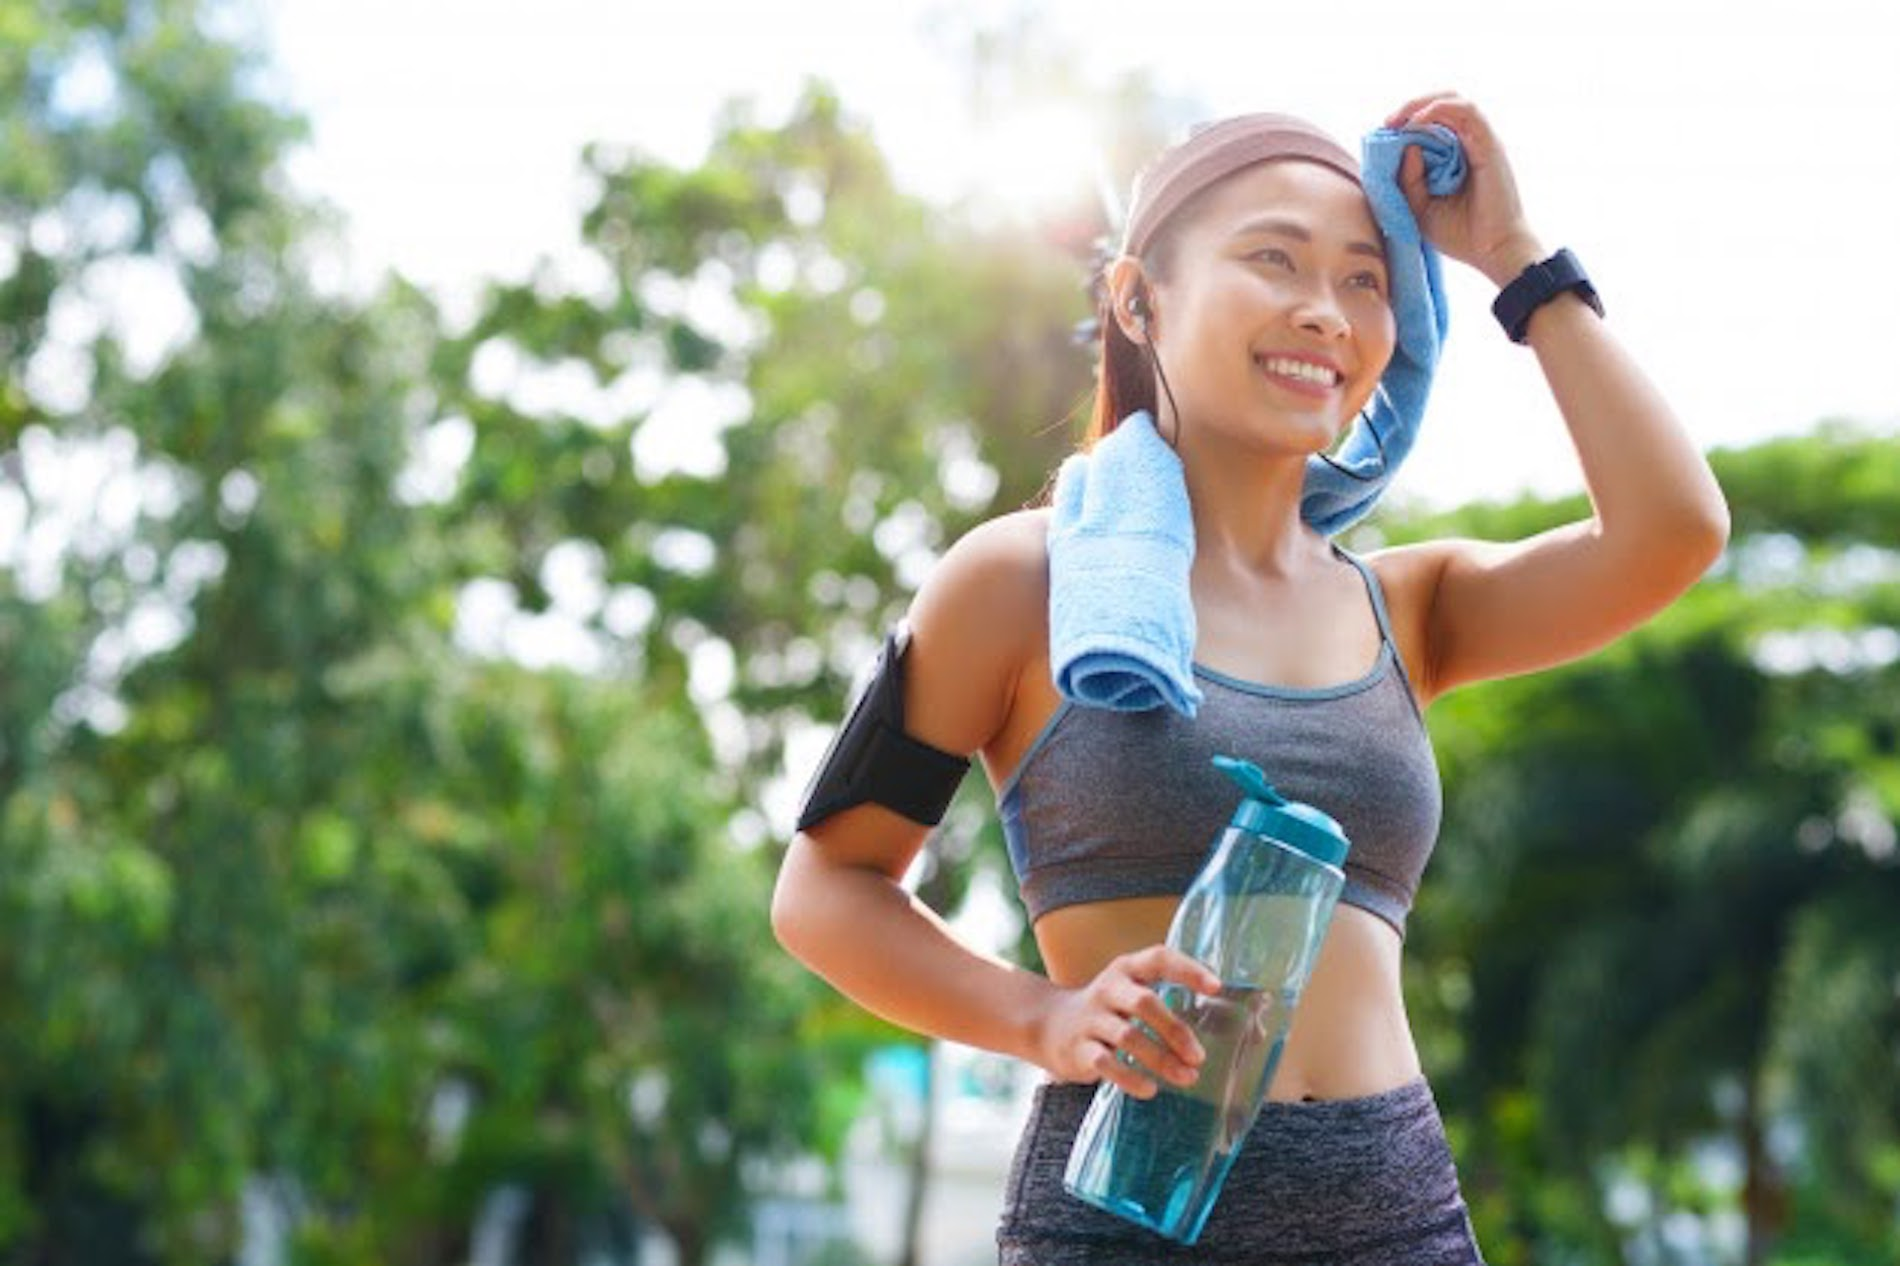 How to take care of your skin when you work out